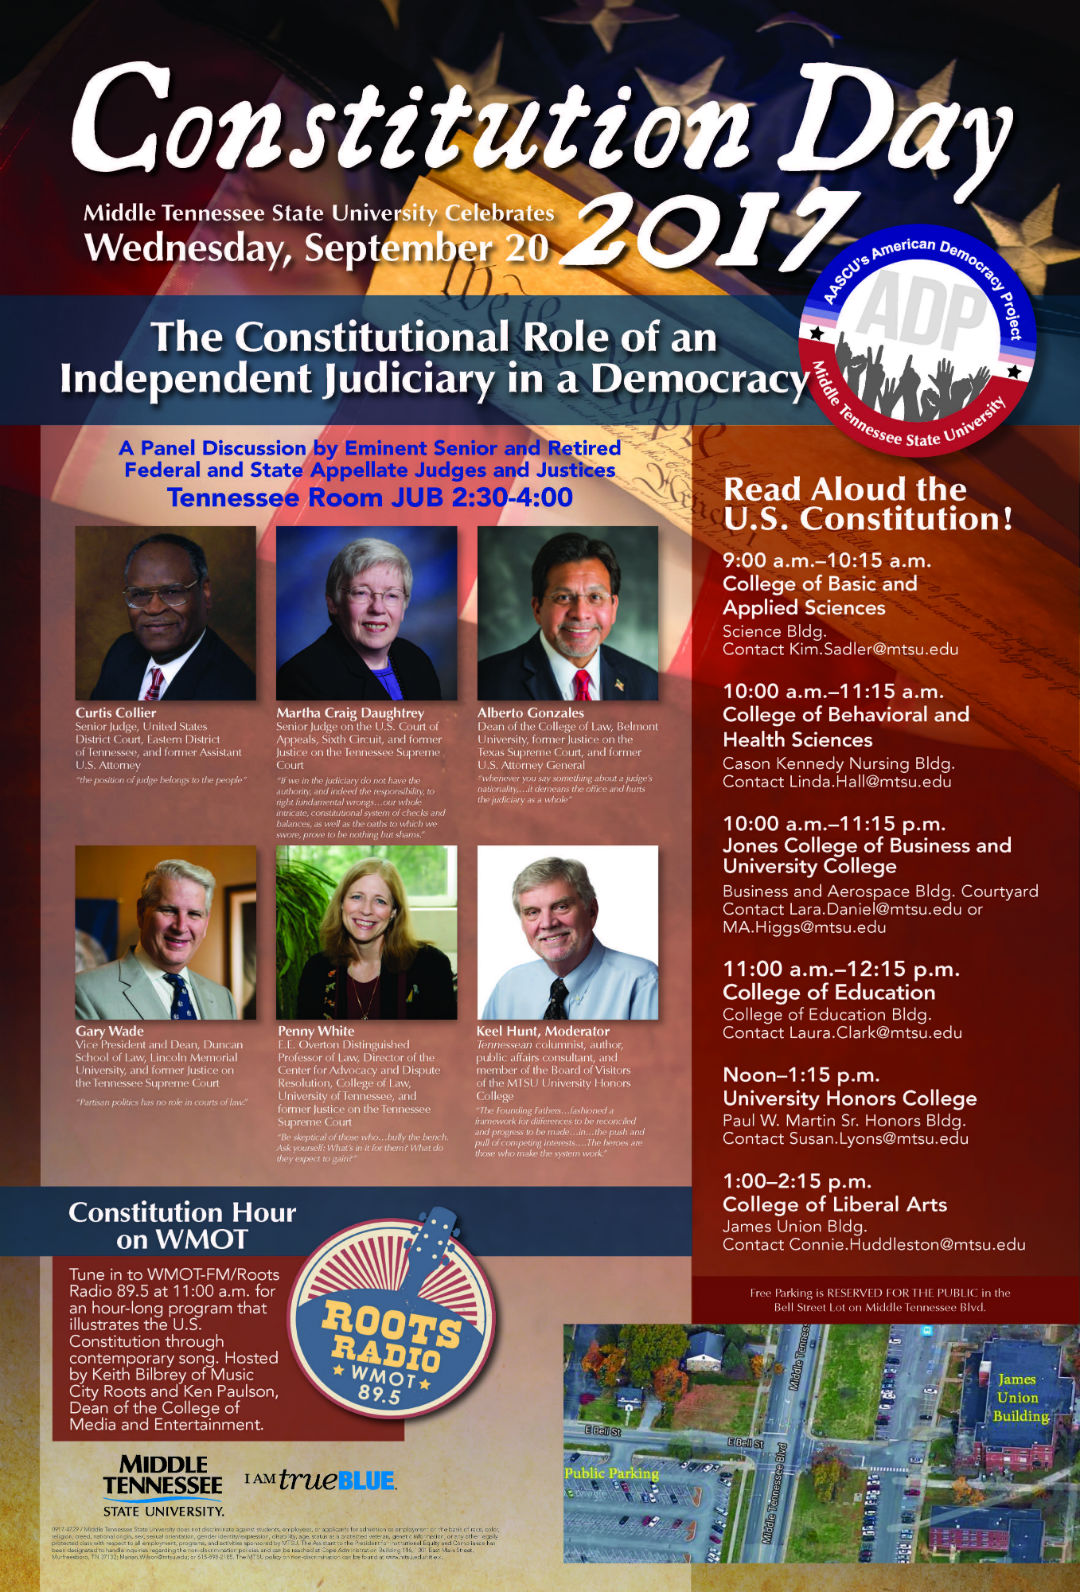 2017 Constitution Day Poster with times of the Constitution read alouds across campus and the 2:30pm Panel discussion of an Independent Judiciary in a Democracy